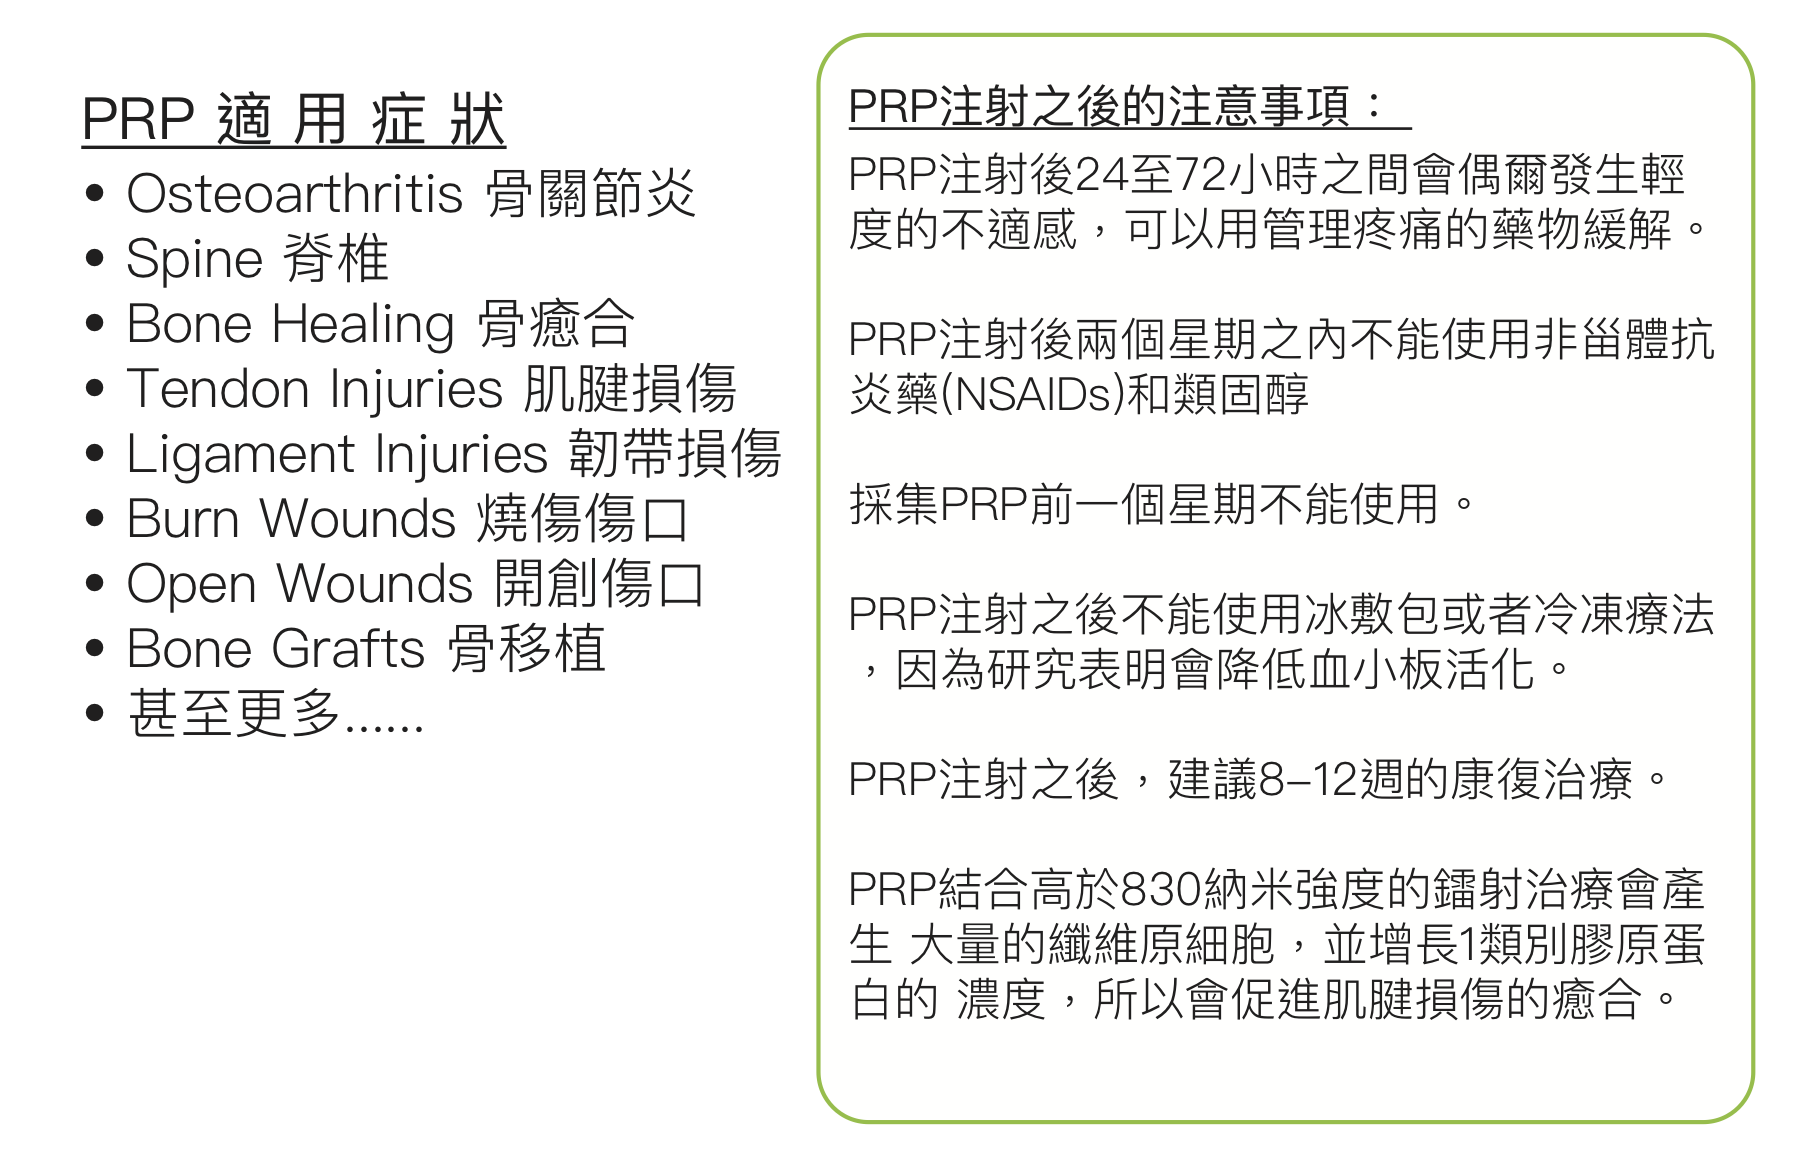 PRP 適用症狀